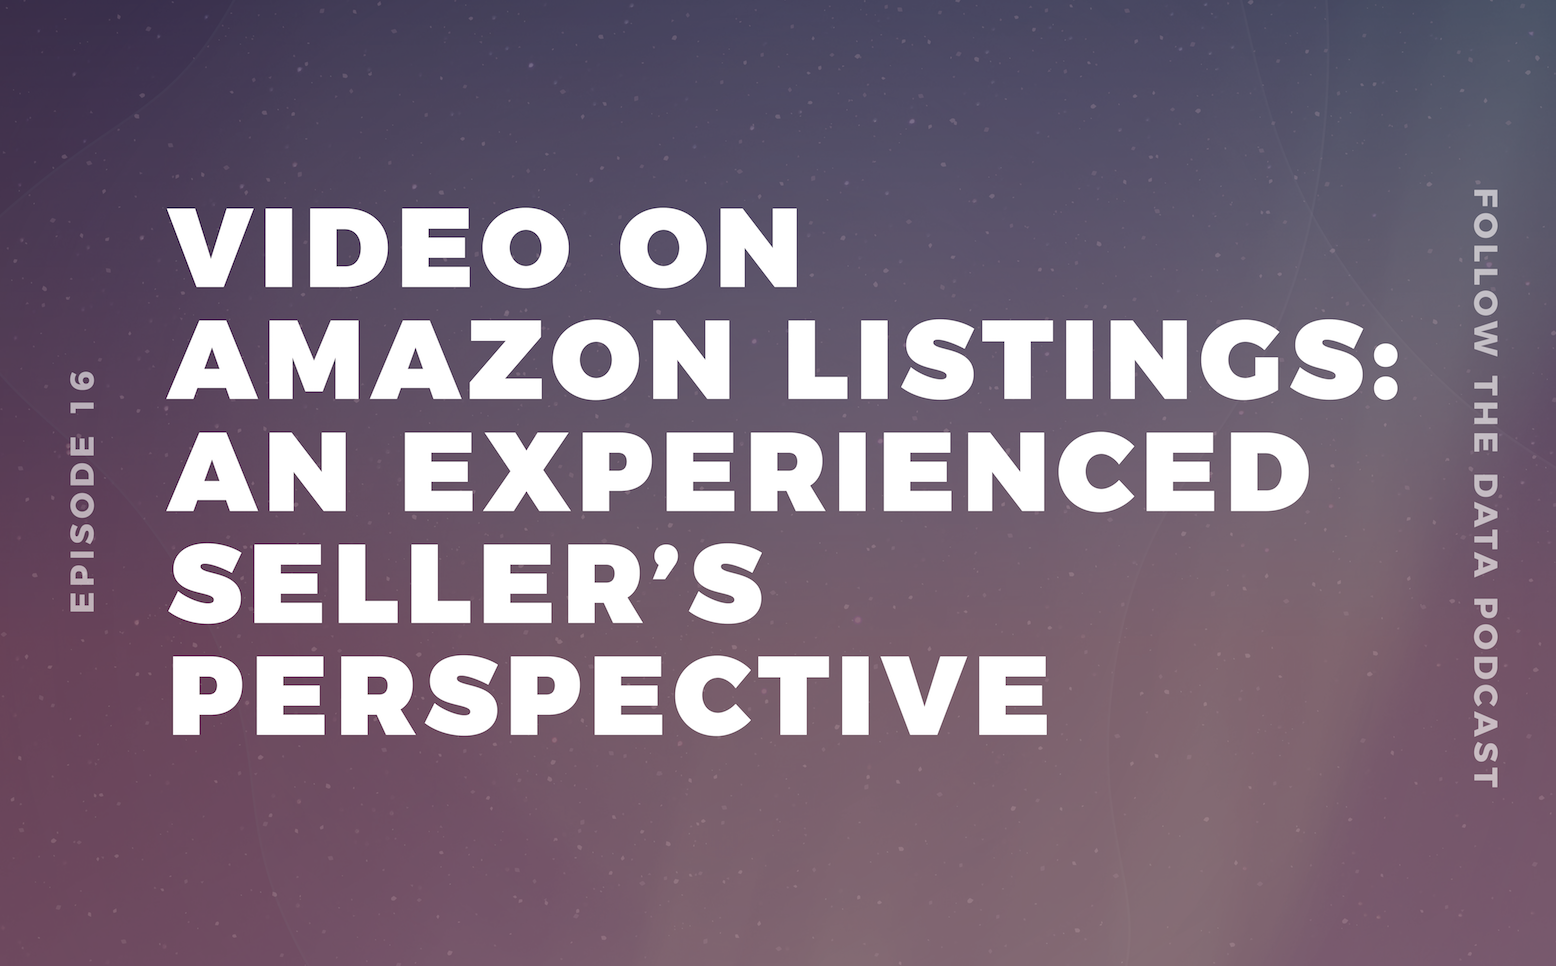 Video on Amazon Listings: An Experienced Seller's Perspective